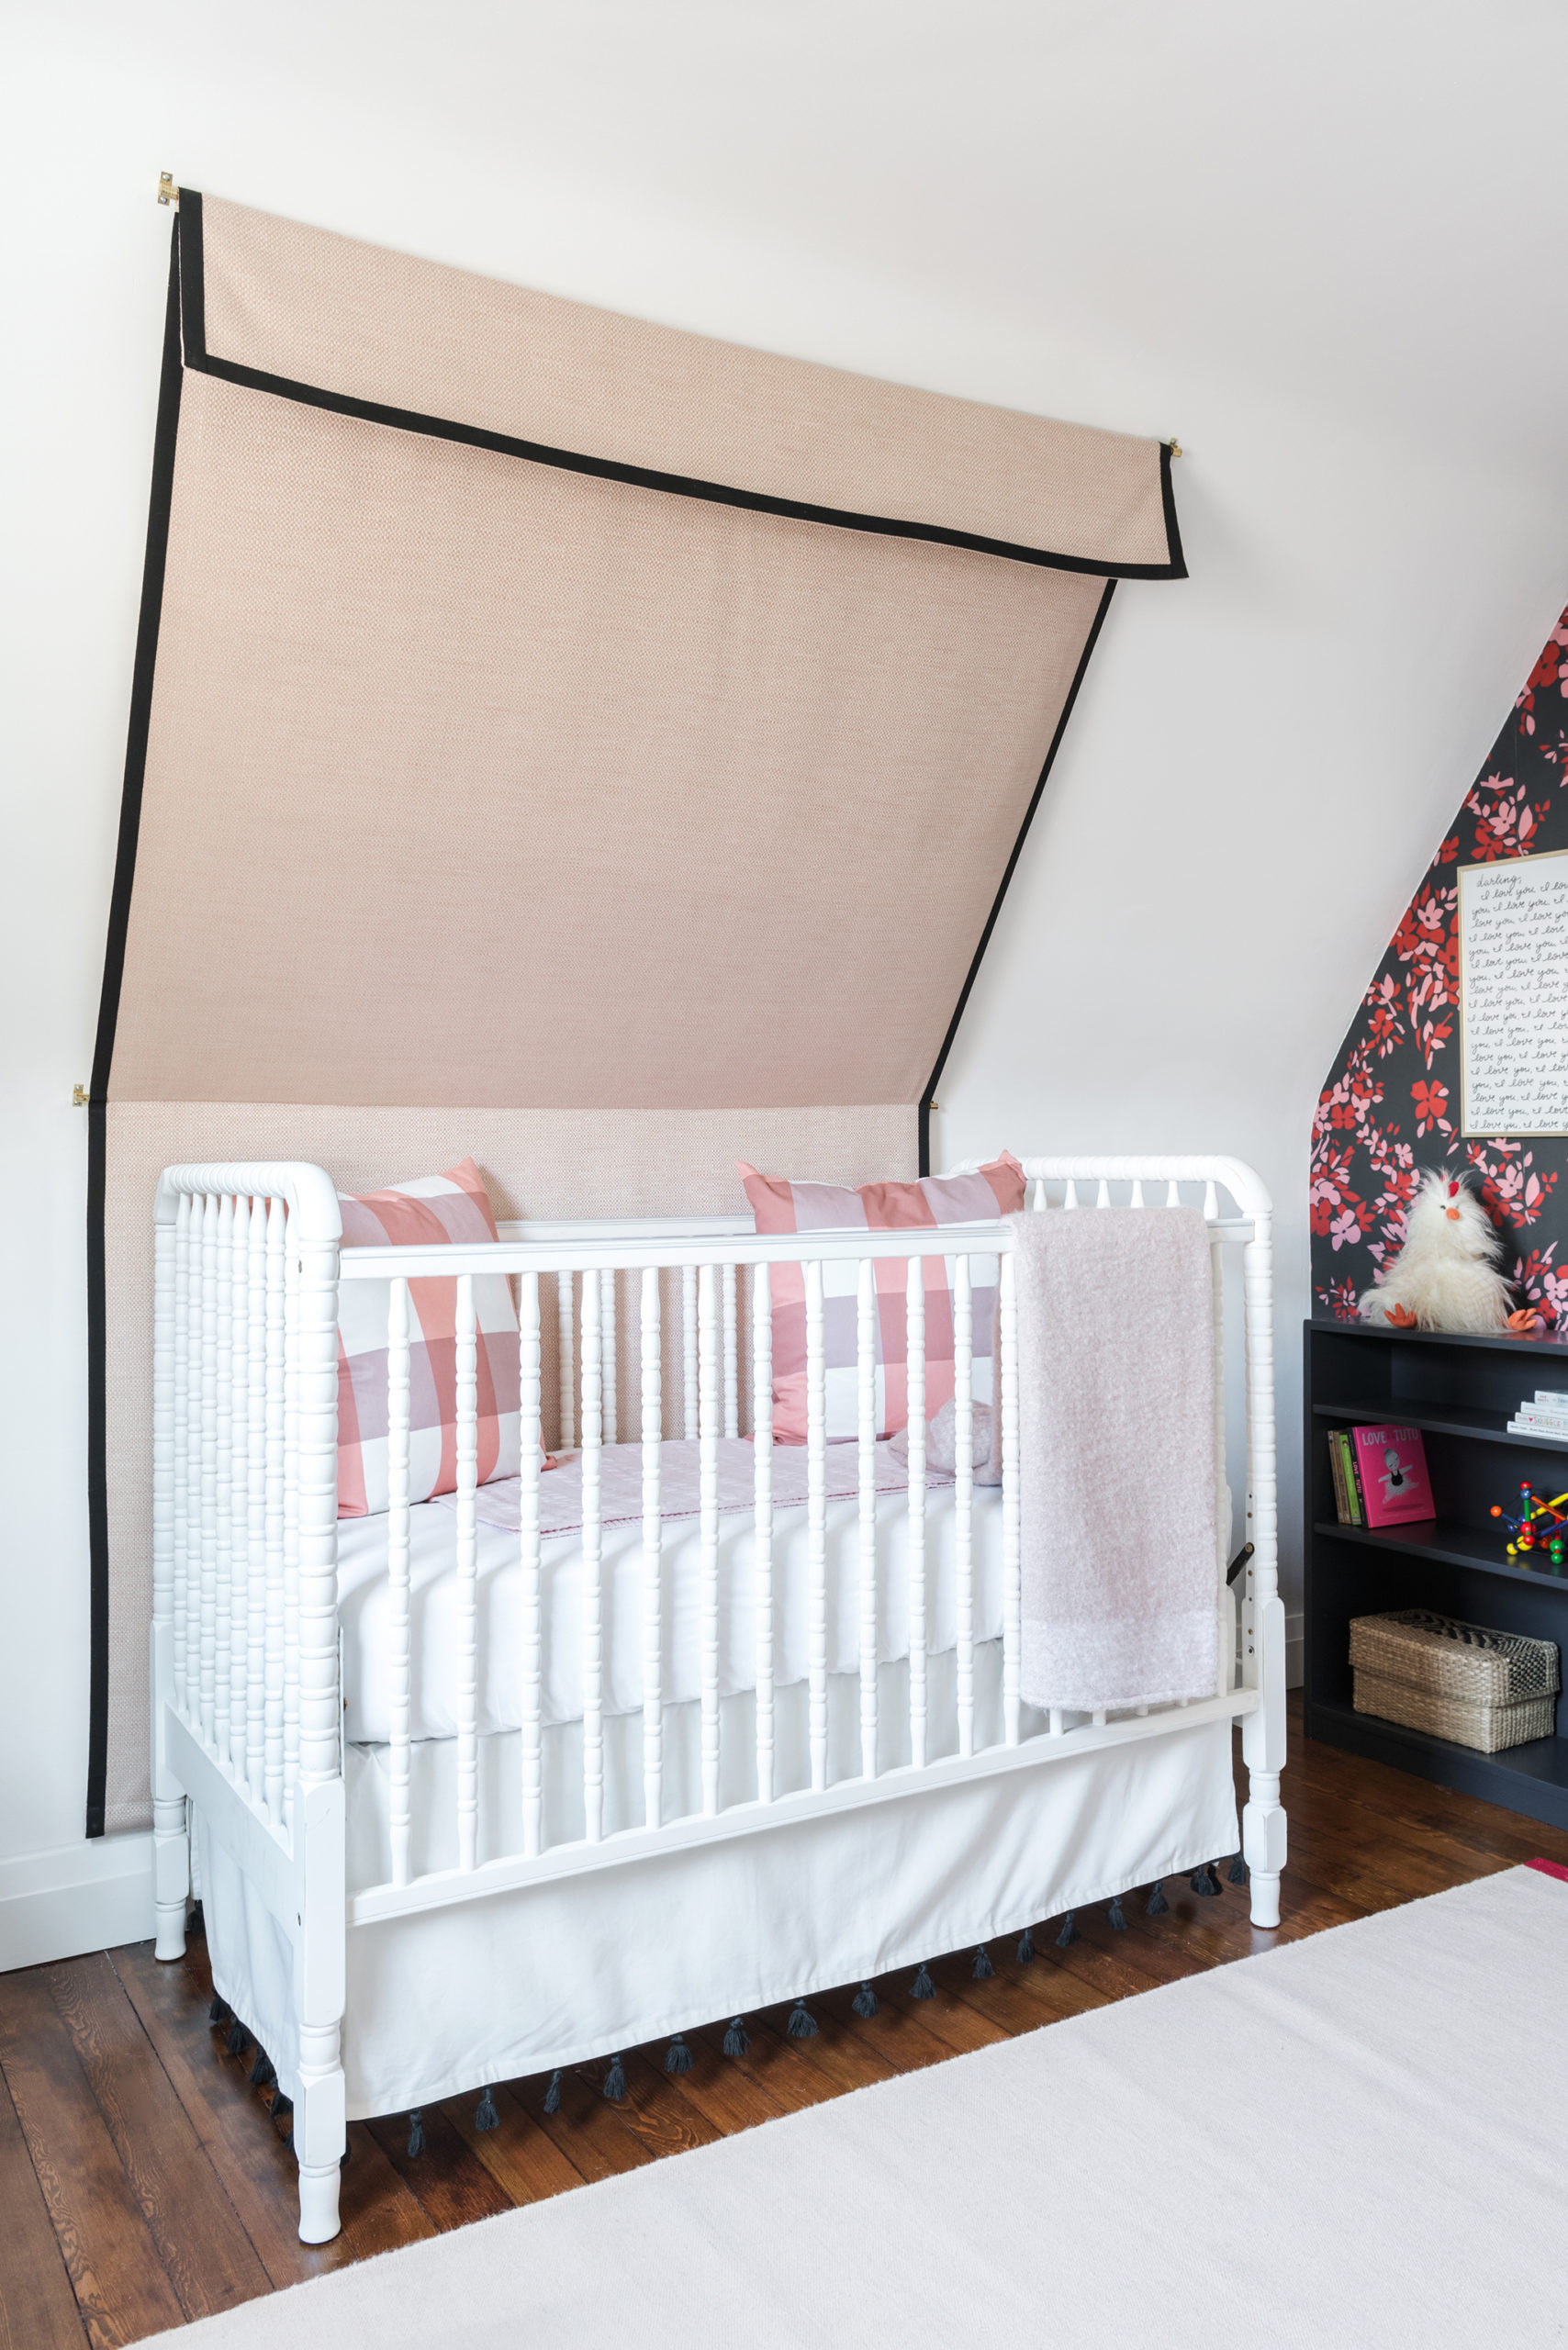 Jenny Lind Style Crib with Canopy